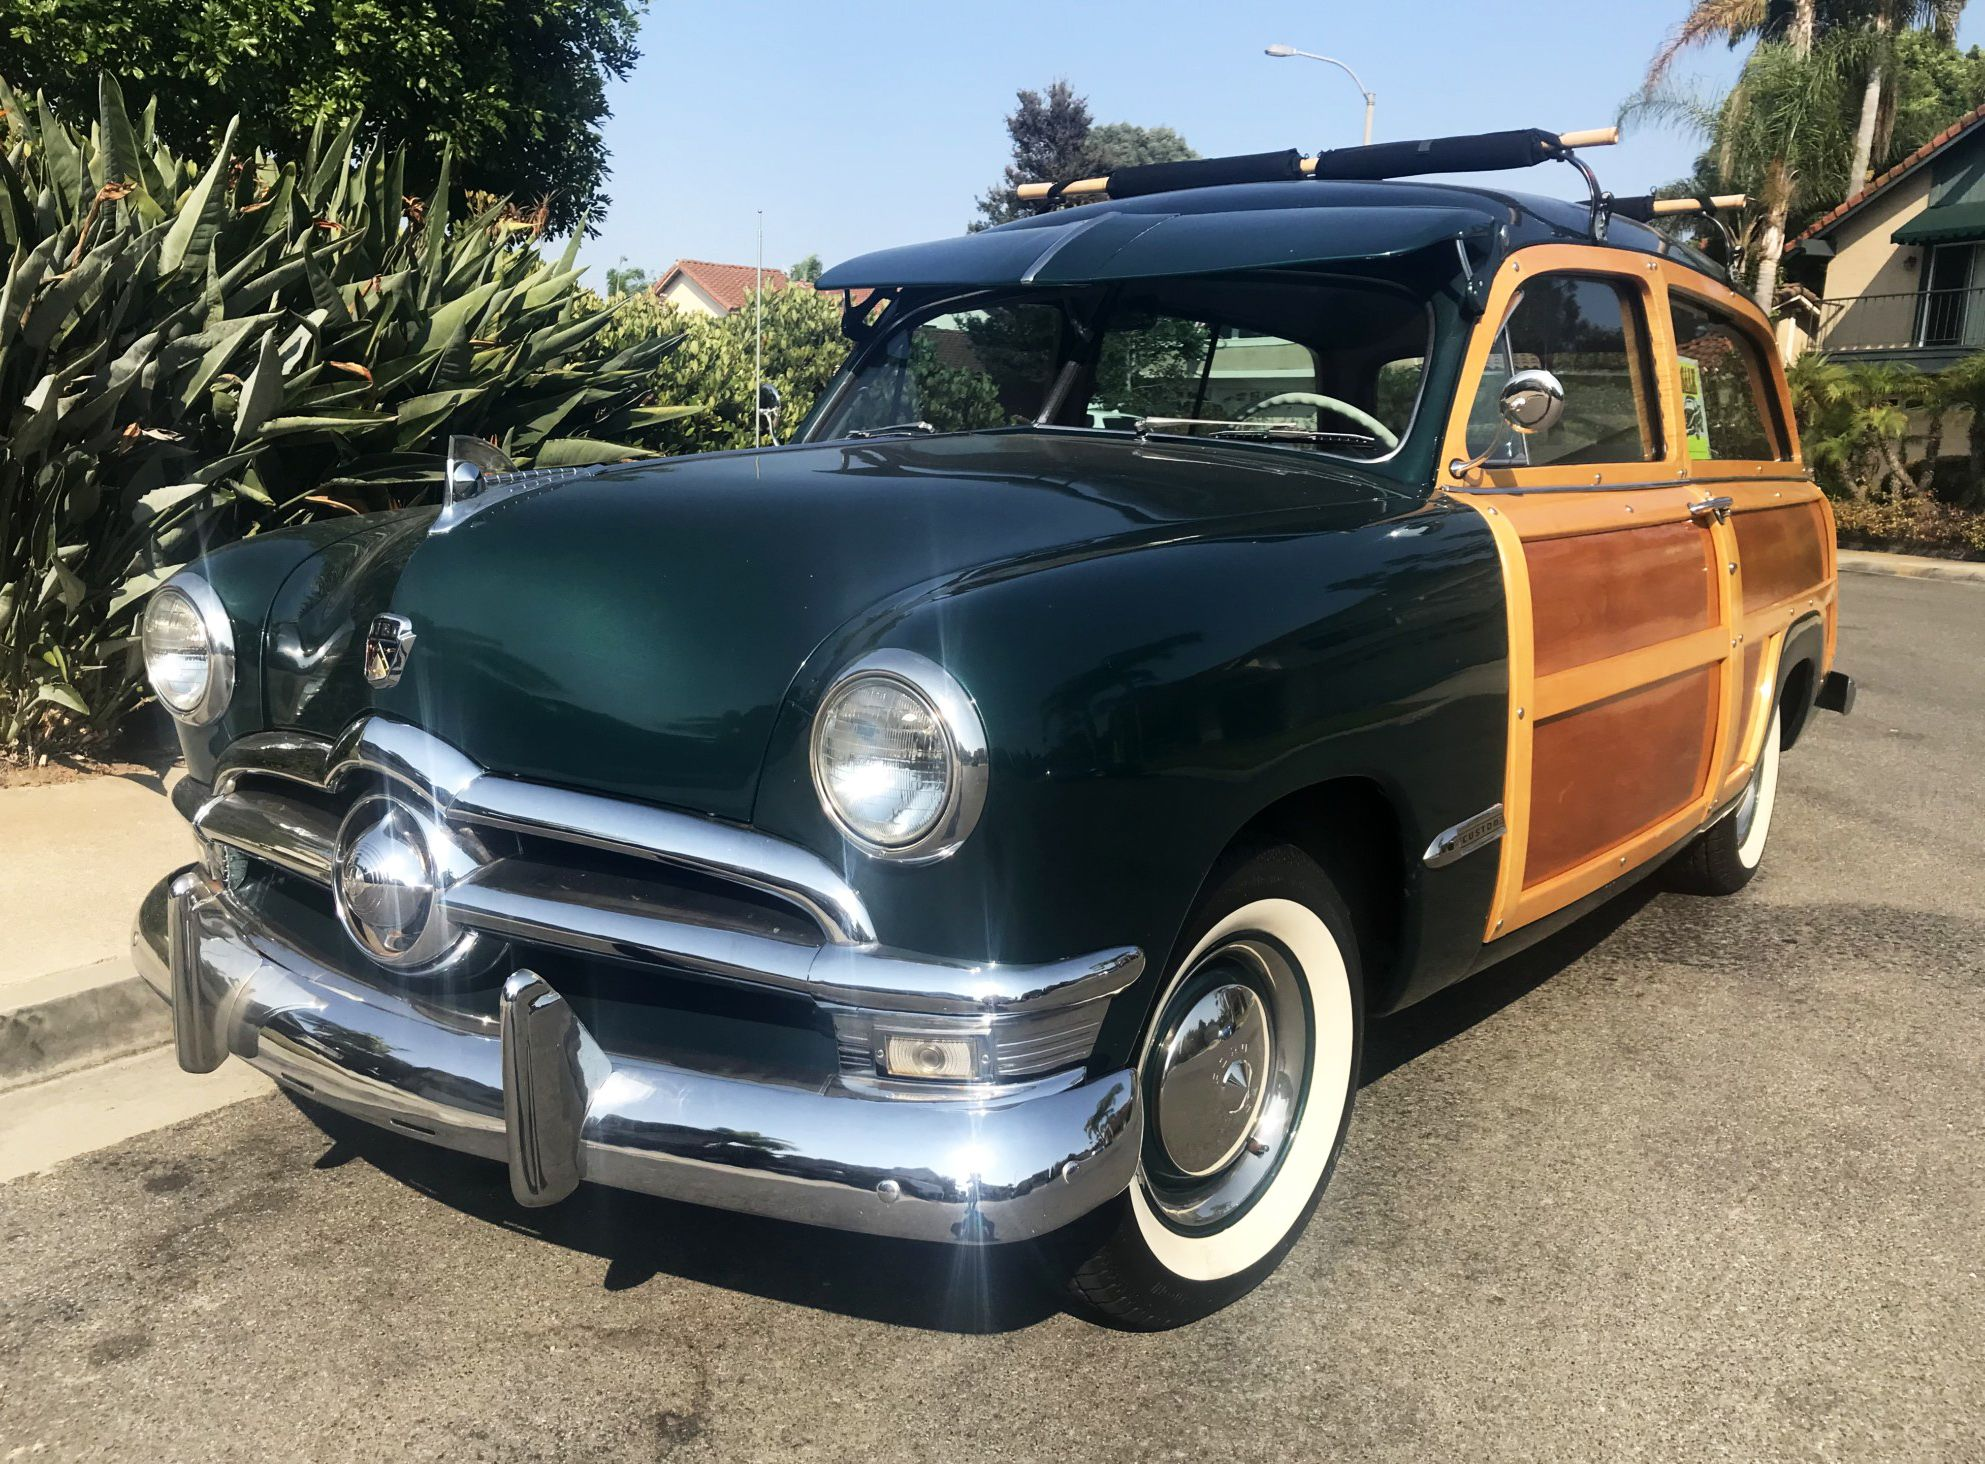 1950 Ford Country Squire Woodie V8 Woody wagon, Ford